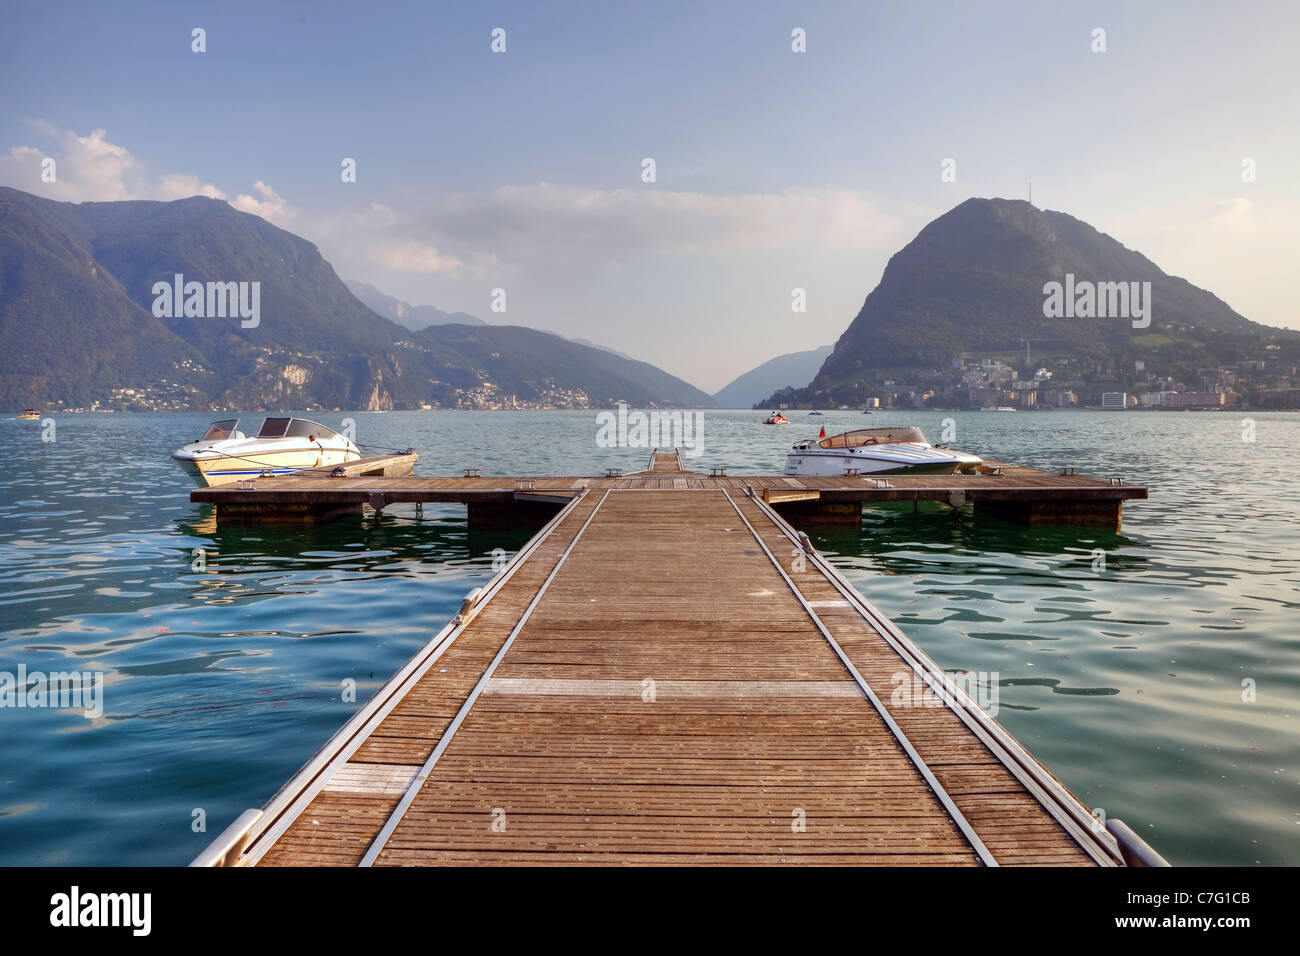 an impressive boat dock on Lake Lugano, with views of Monte Salvatore - Stock Image